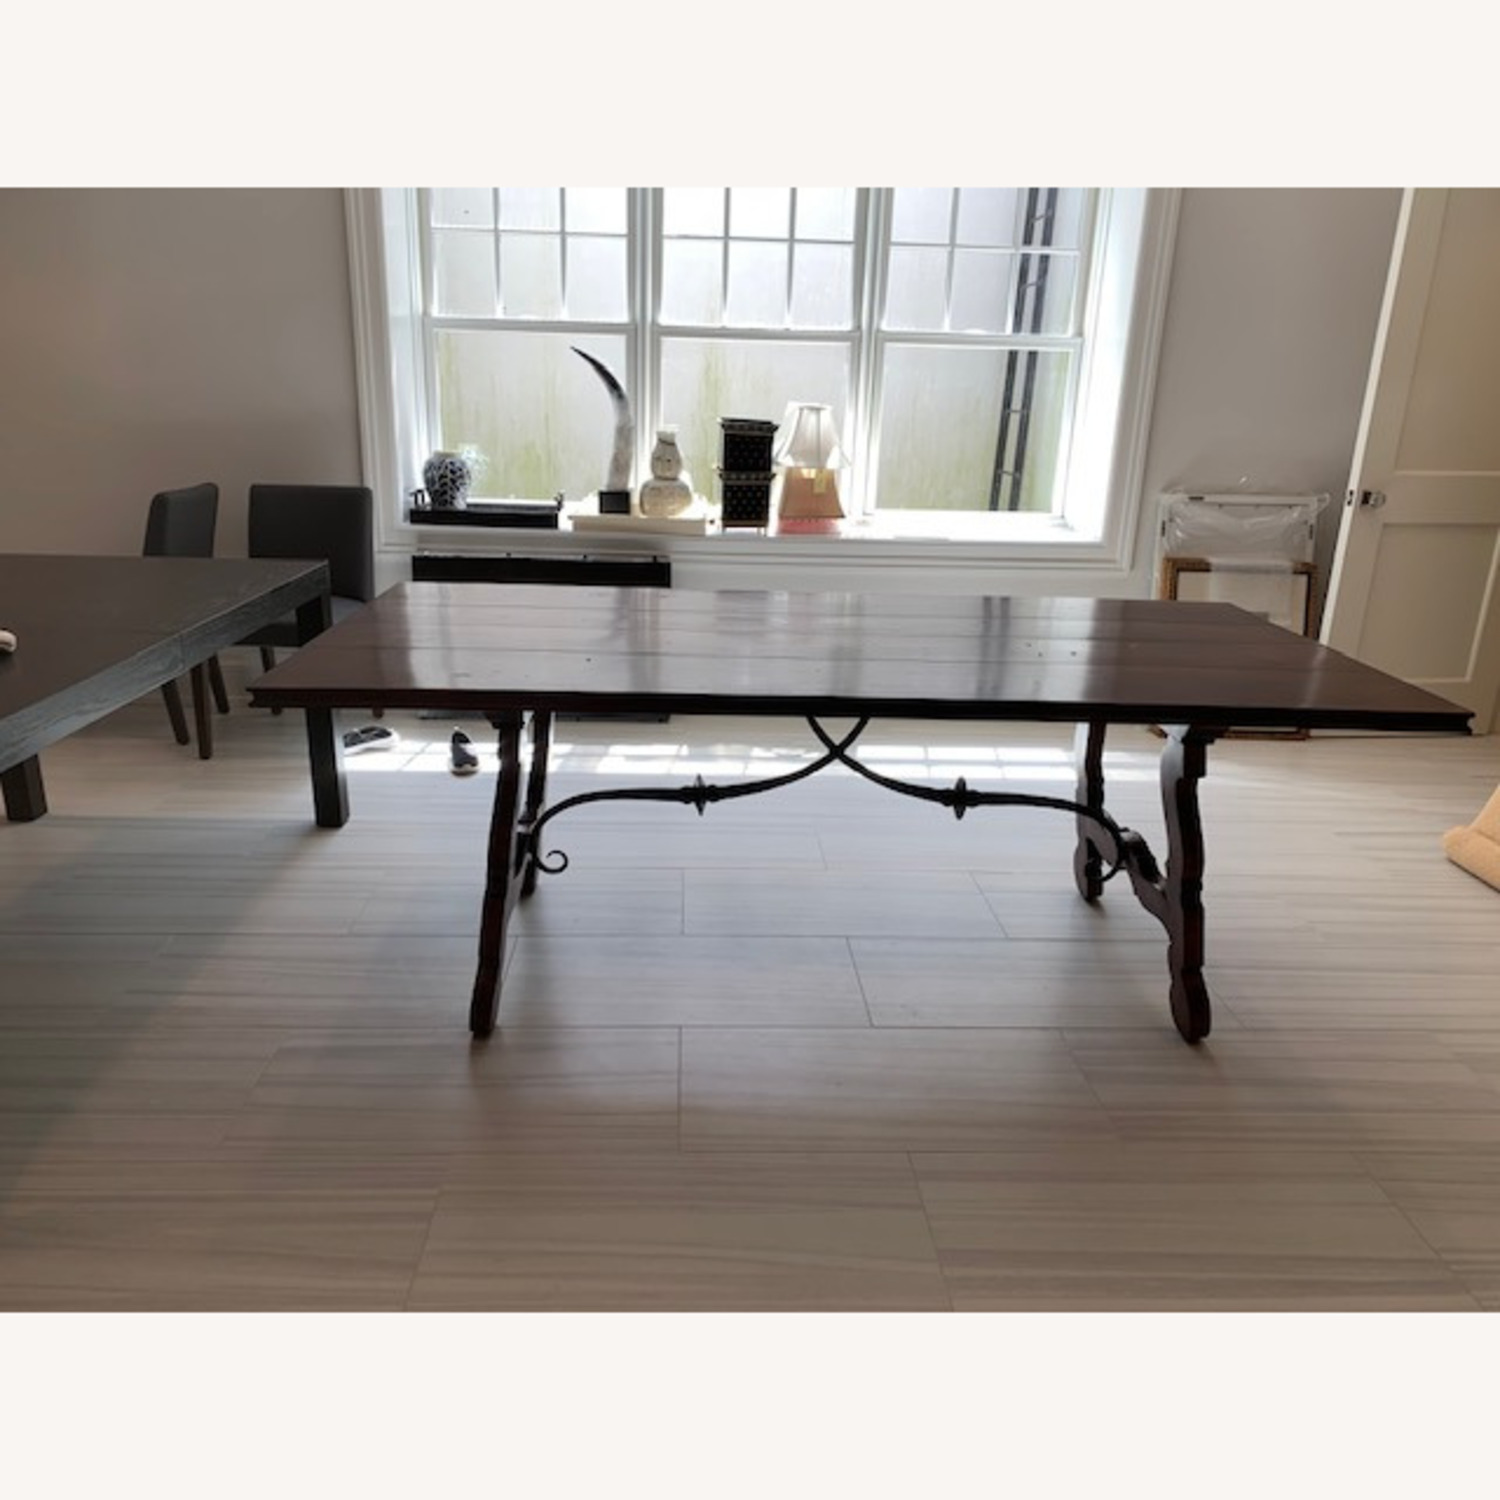 Spanish Style Farm Trestle Table with Forged Steel - image-2